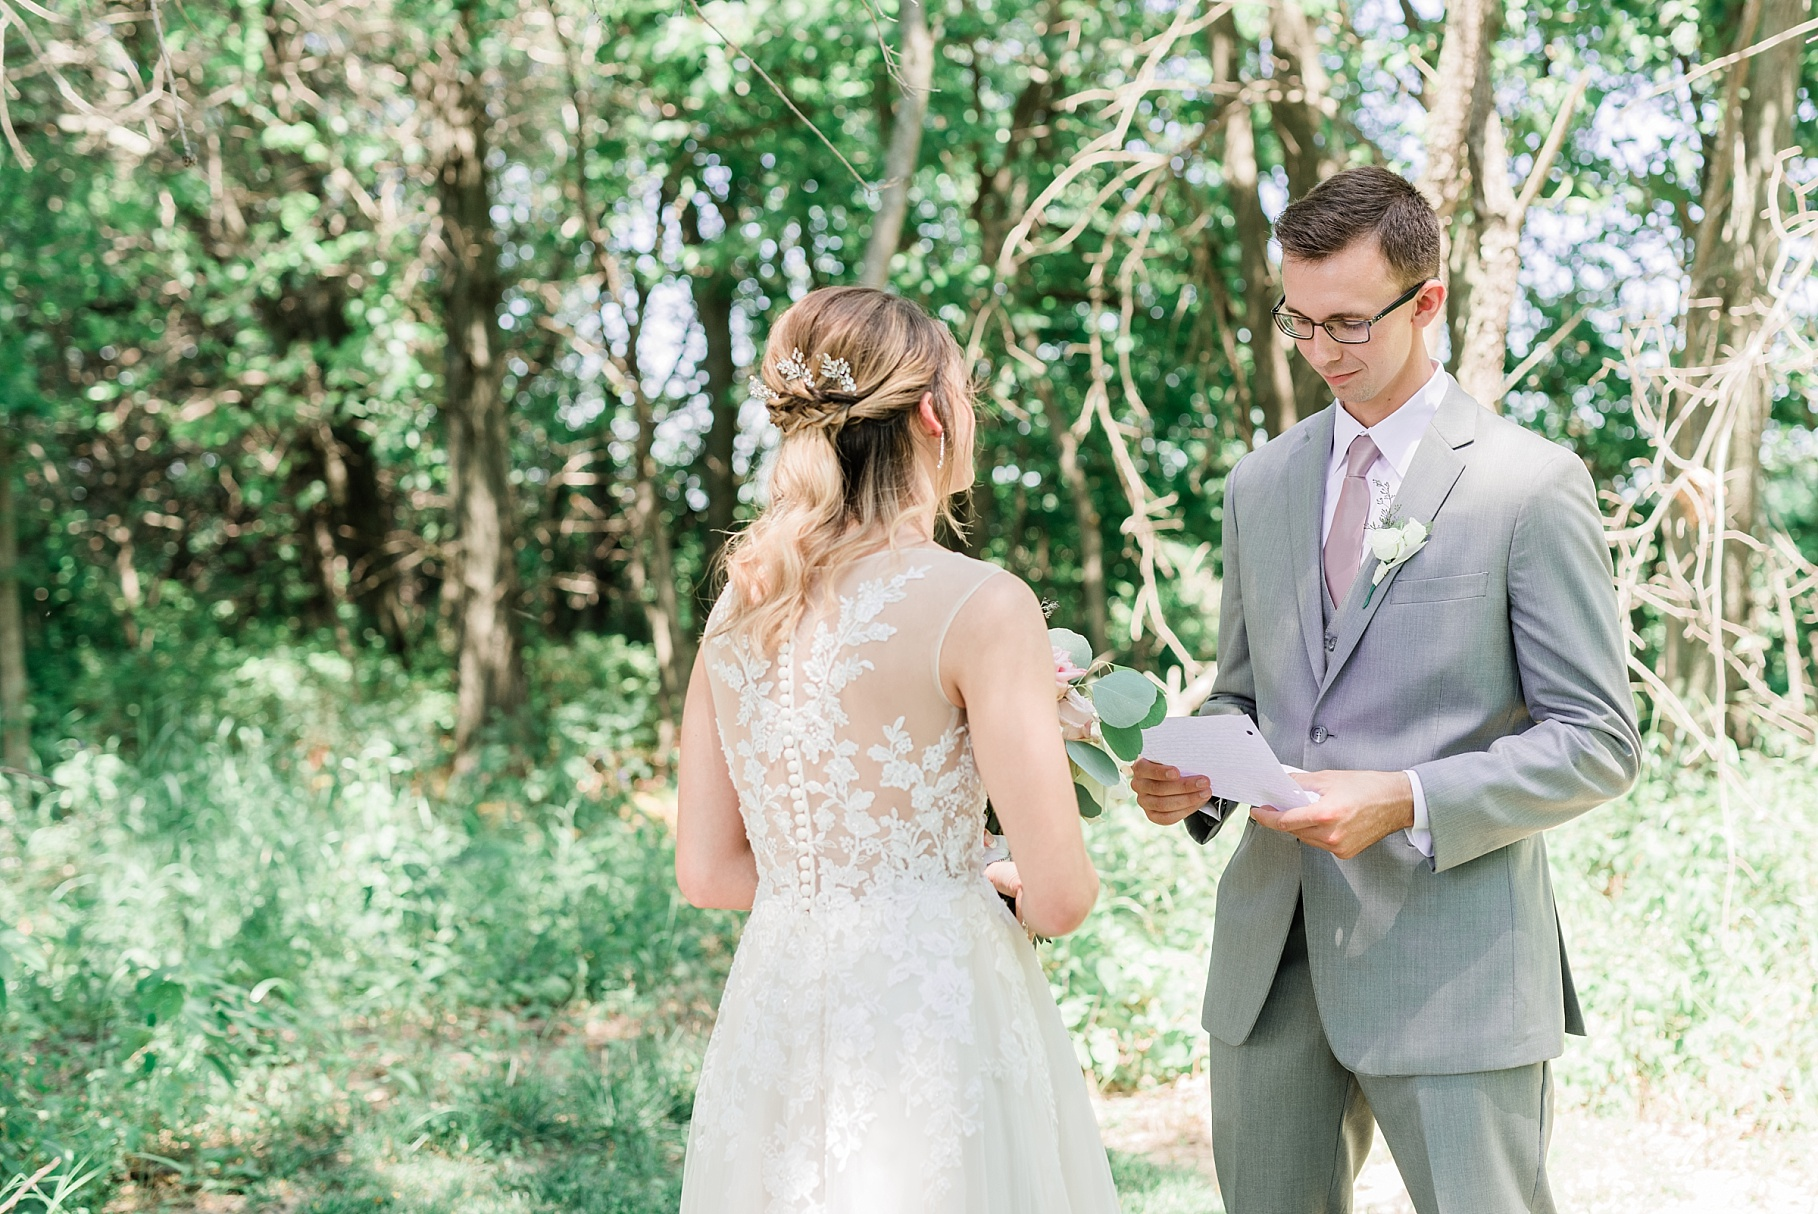 Classic Quartz, White, and Deep Green Wedding at Emerson Fields by Kelsi Kliethermes Photography Best Columbia Missouri and Maui Hawaii Wedding Photographer_0003.jpg